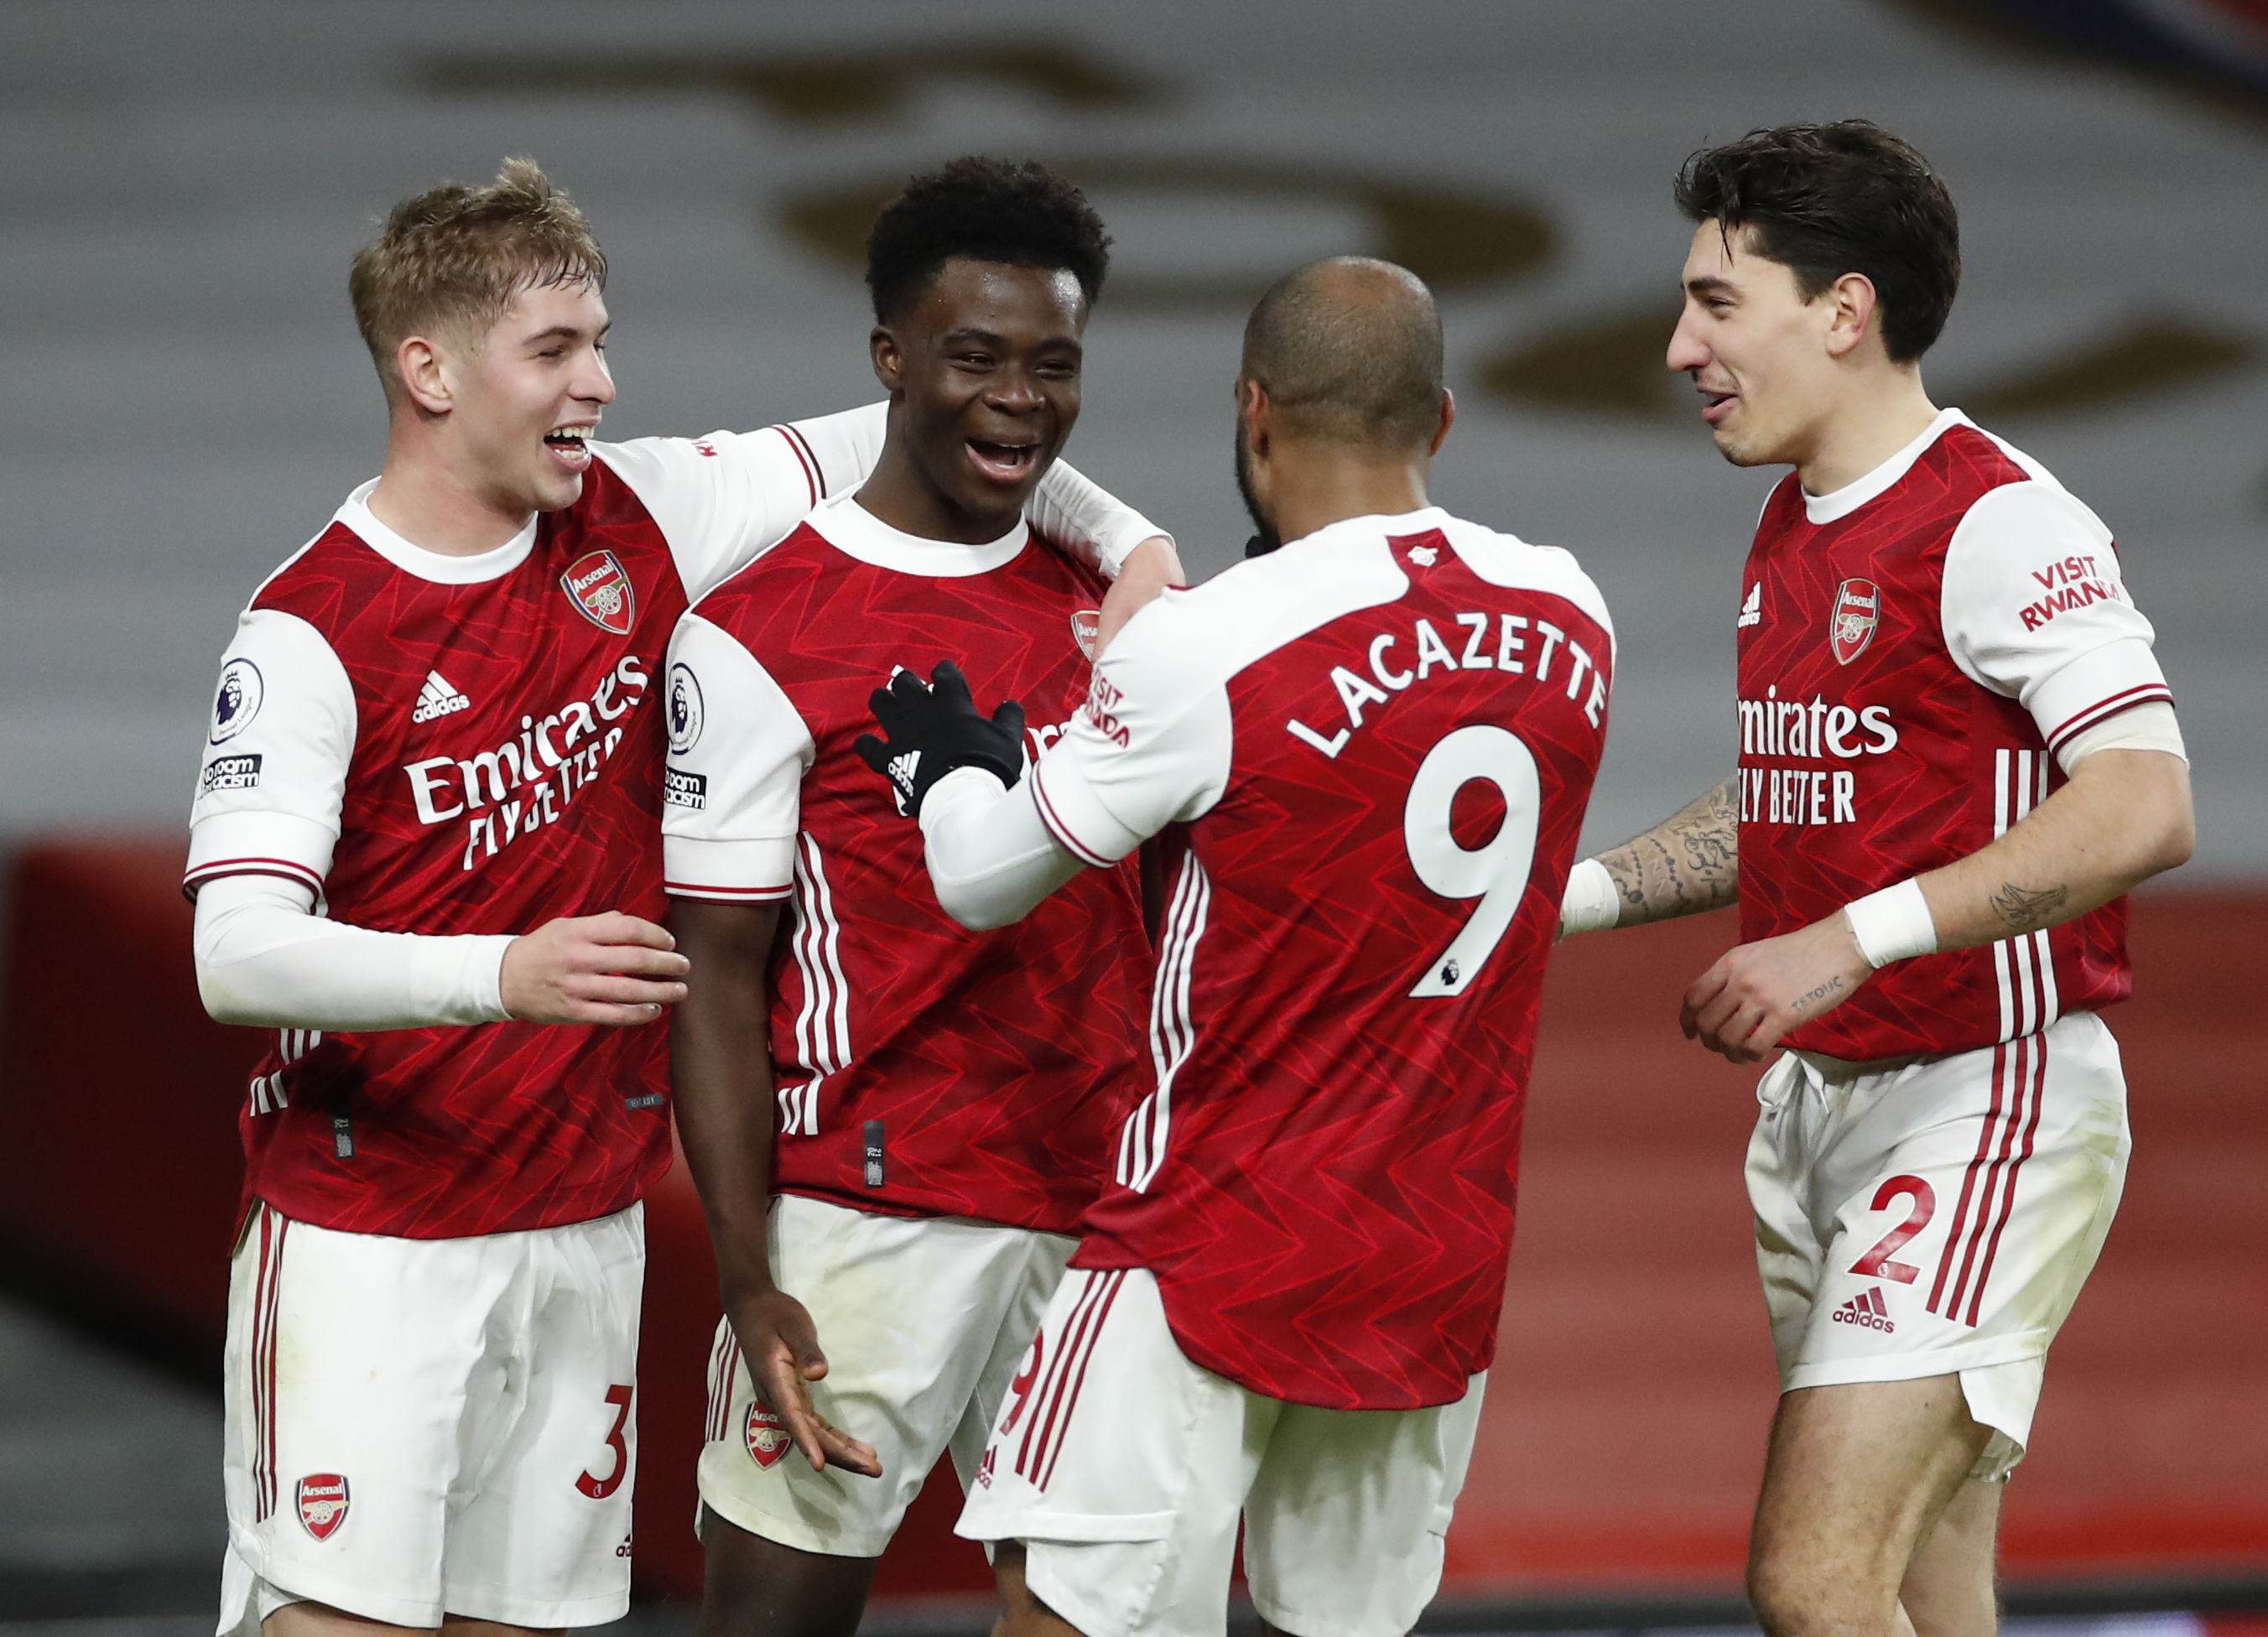 Youngsters Deliver For Arsenal As Scrutiny Shifts To Lampard Kark